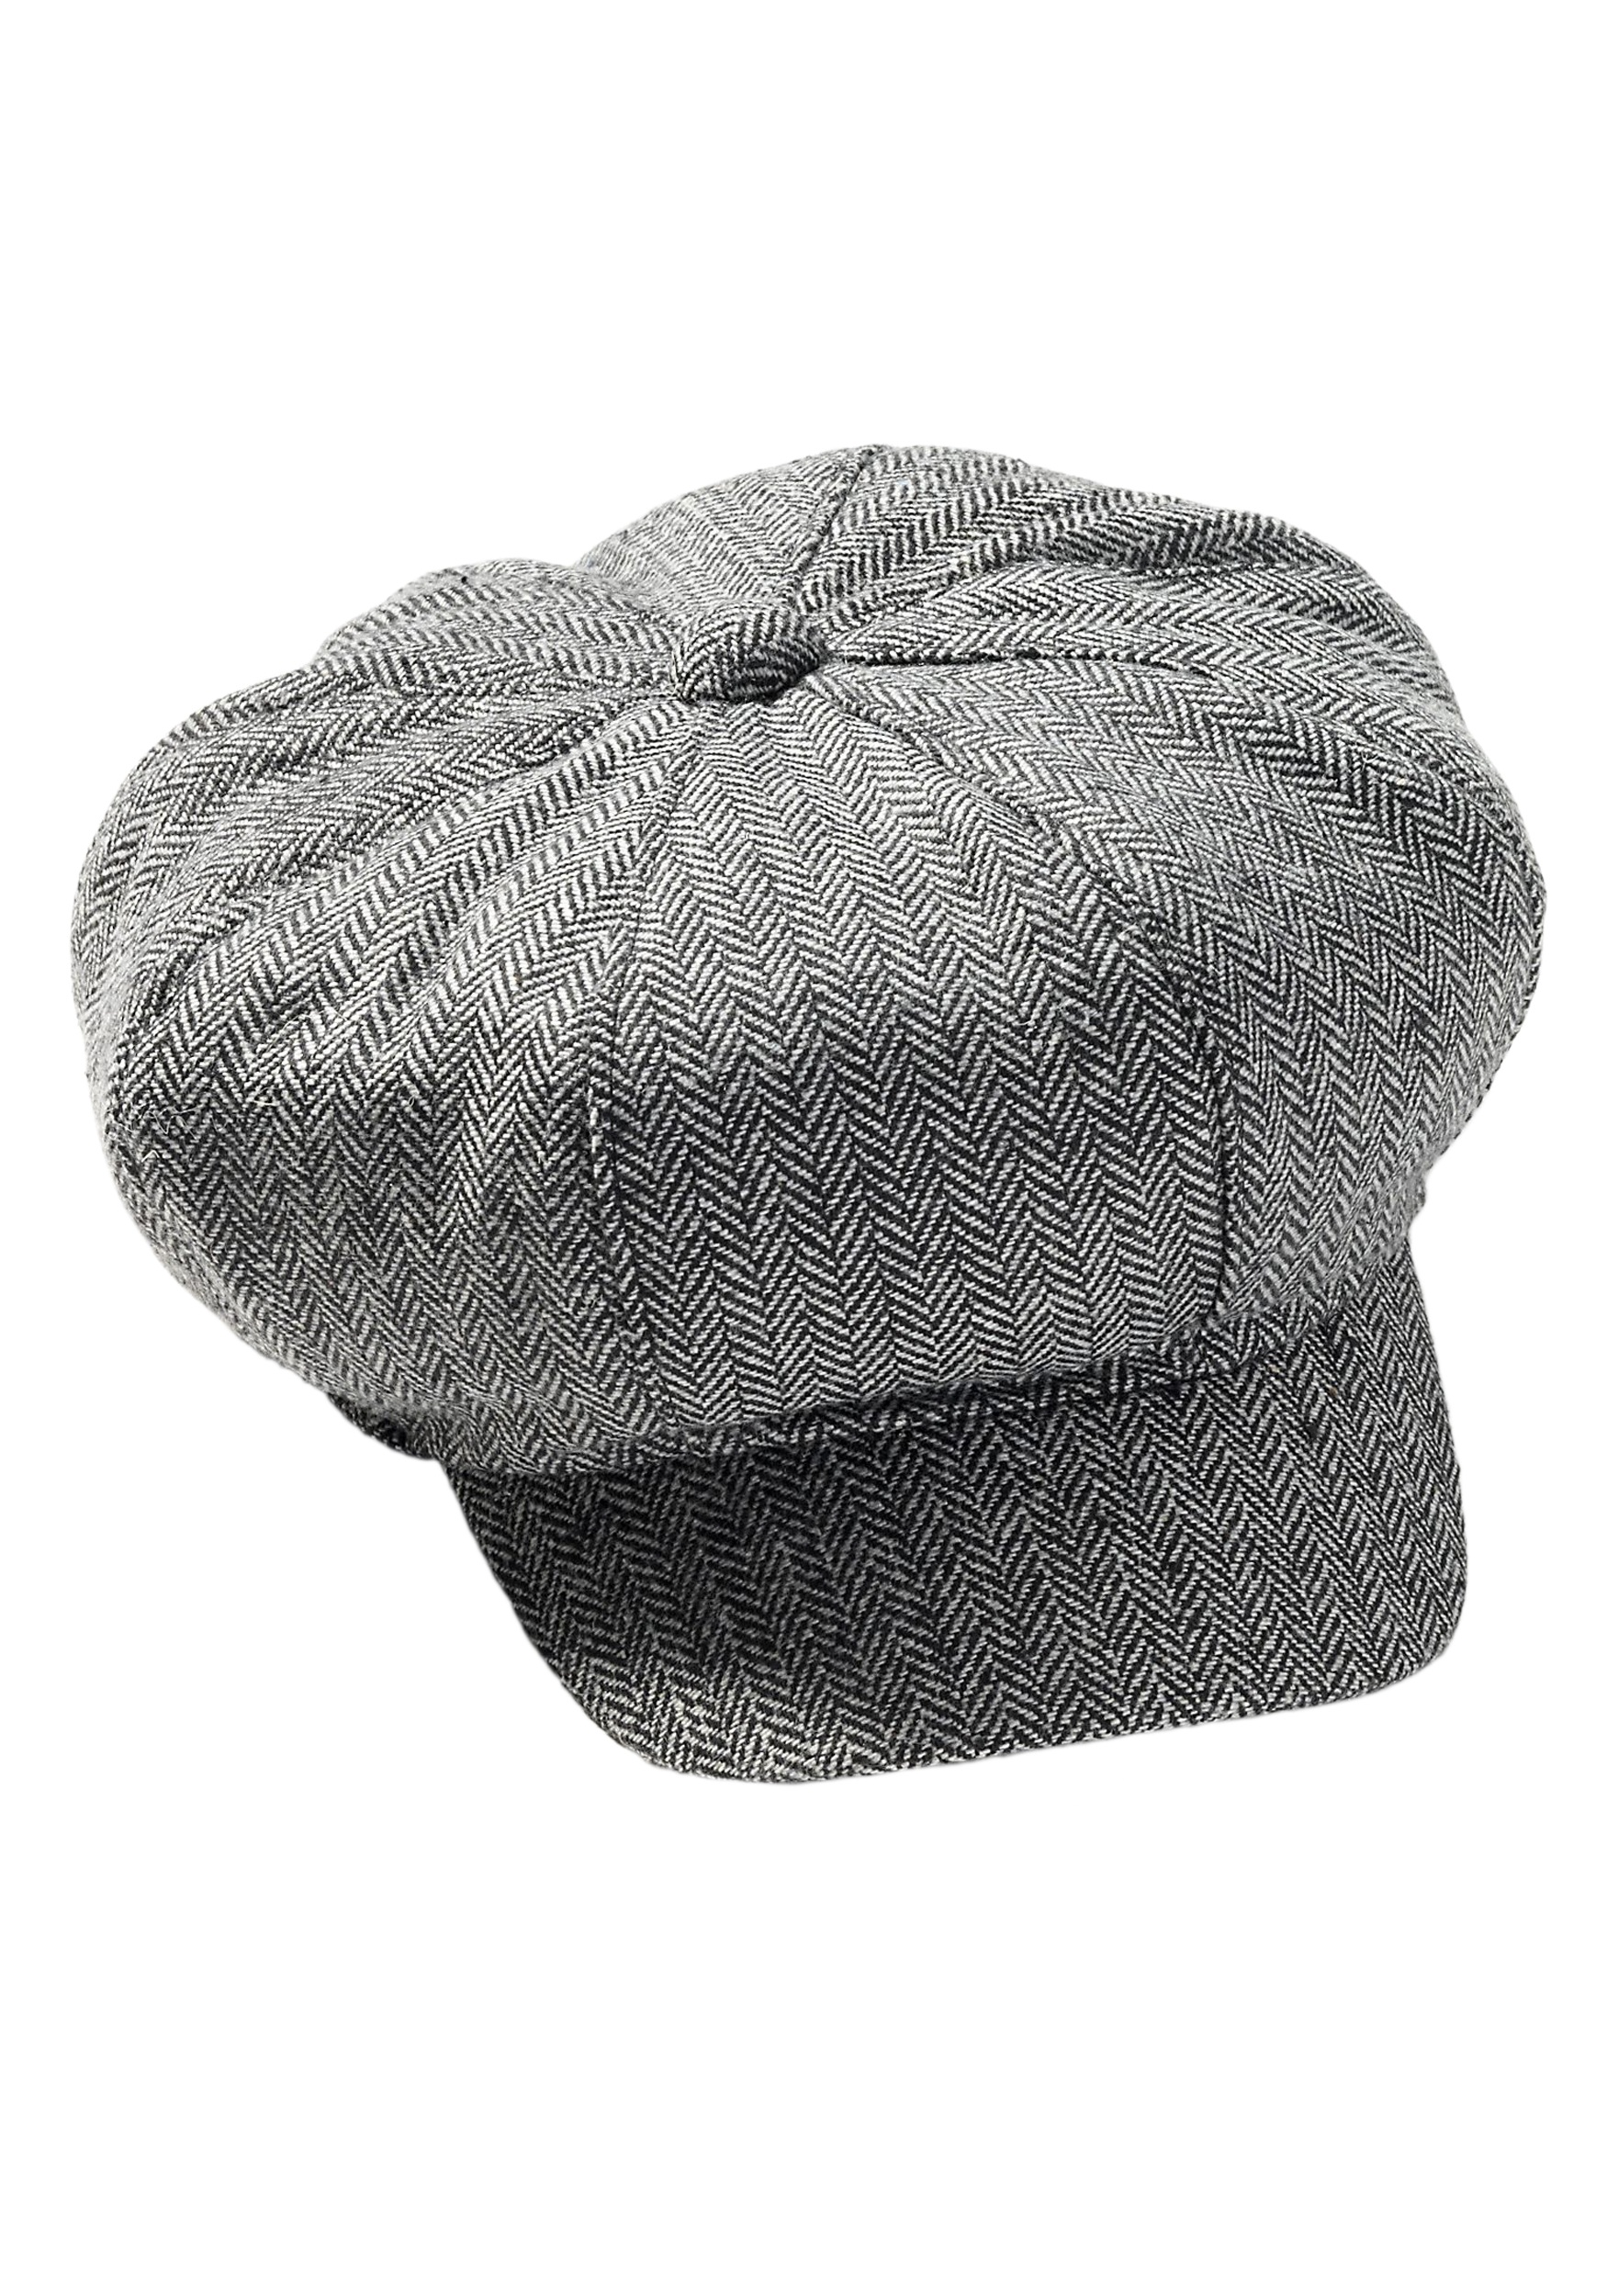 tweed-newsboy-hat.jpg bed7f013252